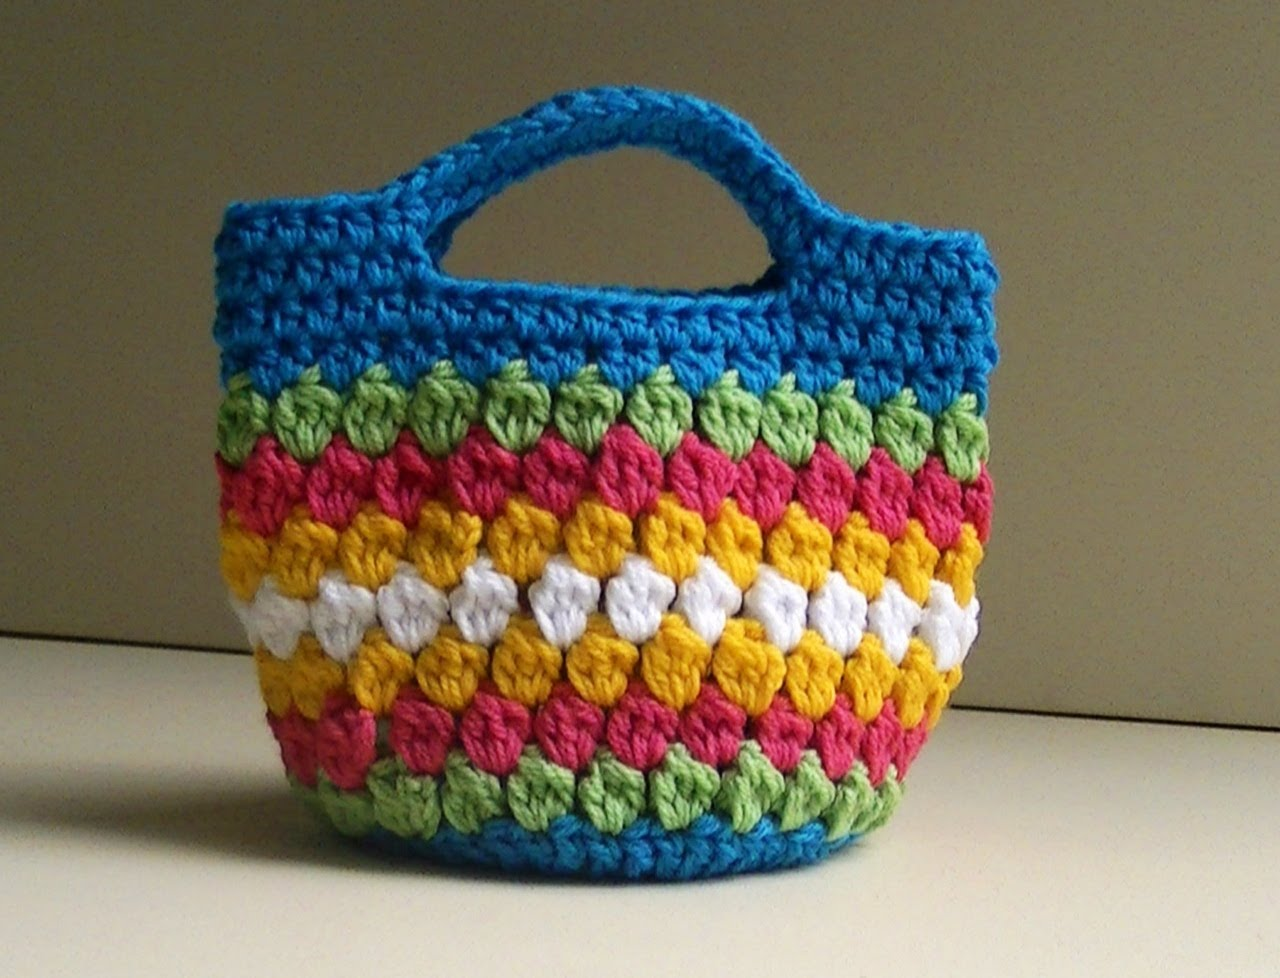 Crochet Stitches Video Tutorials : Cluster Stitch Bag Crochet ( Video Tutorial ) - The Spinners Husband